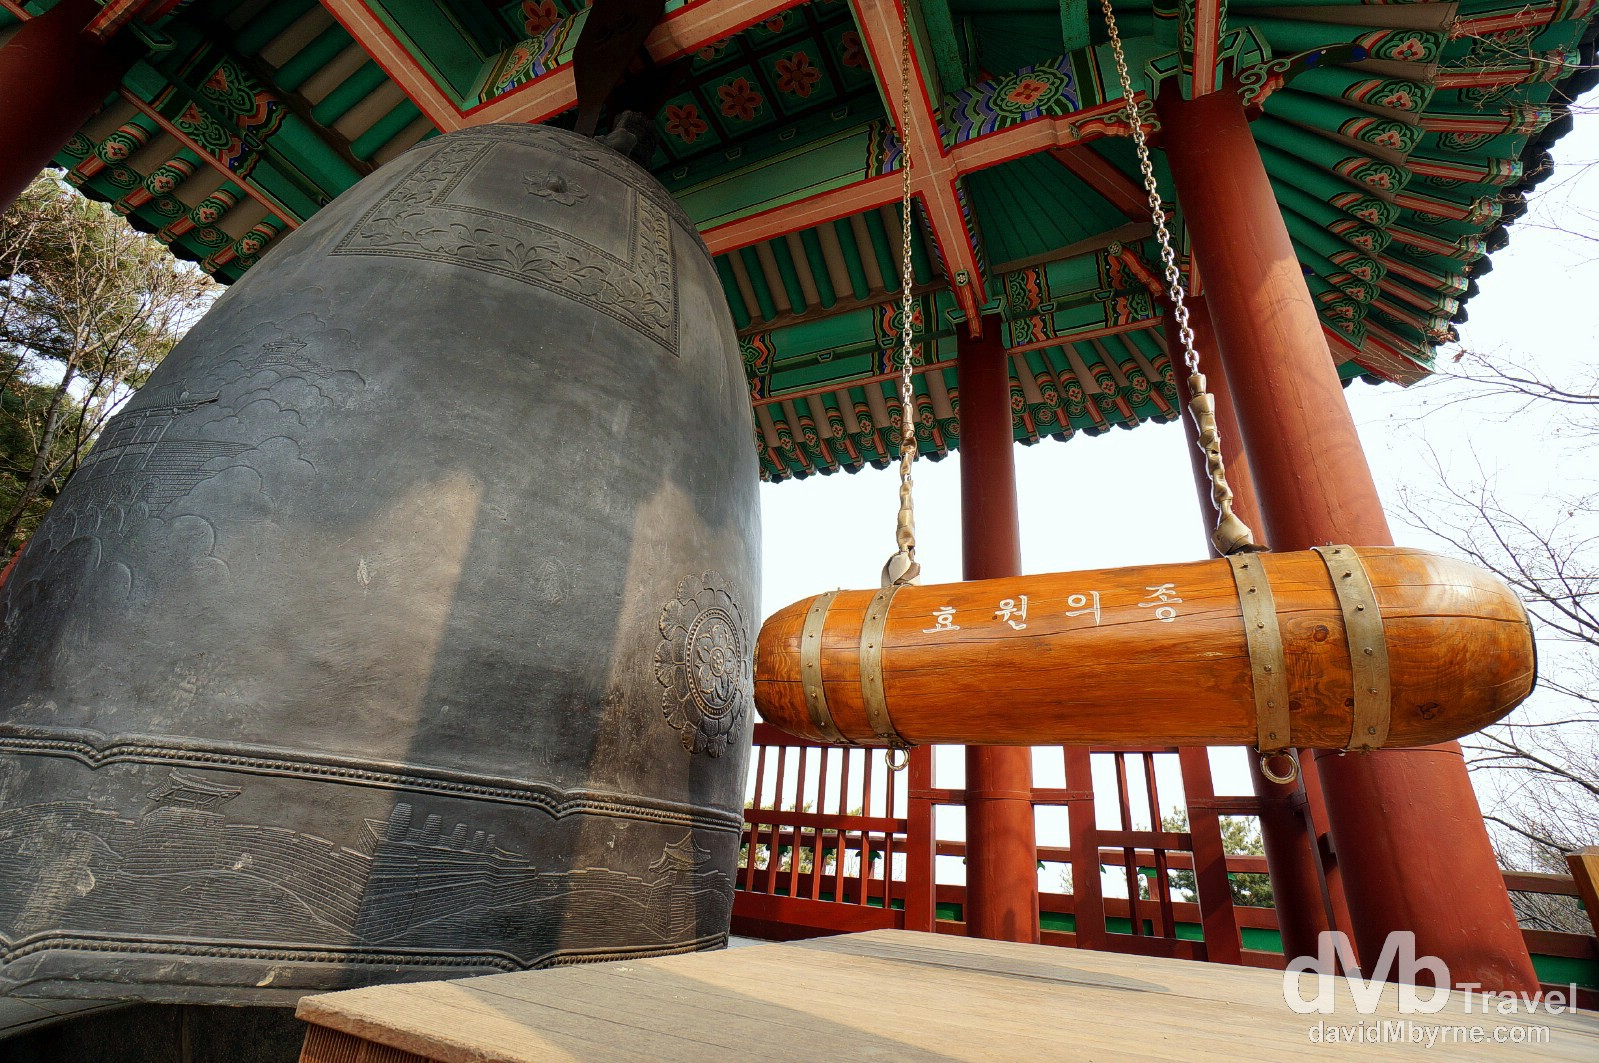 The Bell of Hyowon of Suwon Hwaseong Fortress, Suwon, South Korea. February 23rd, 2014.